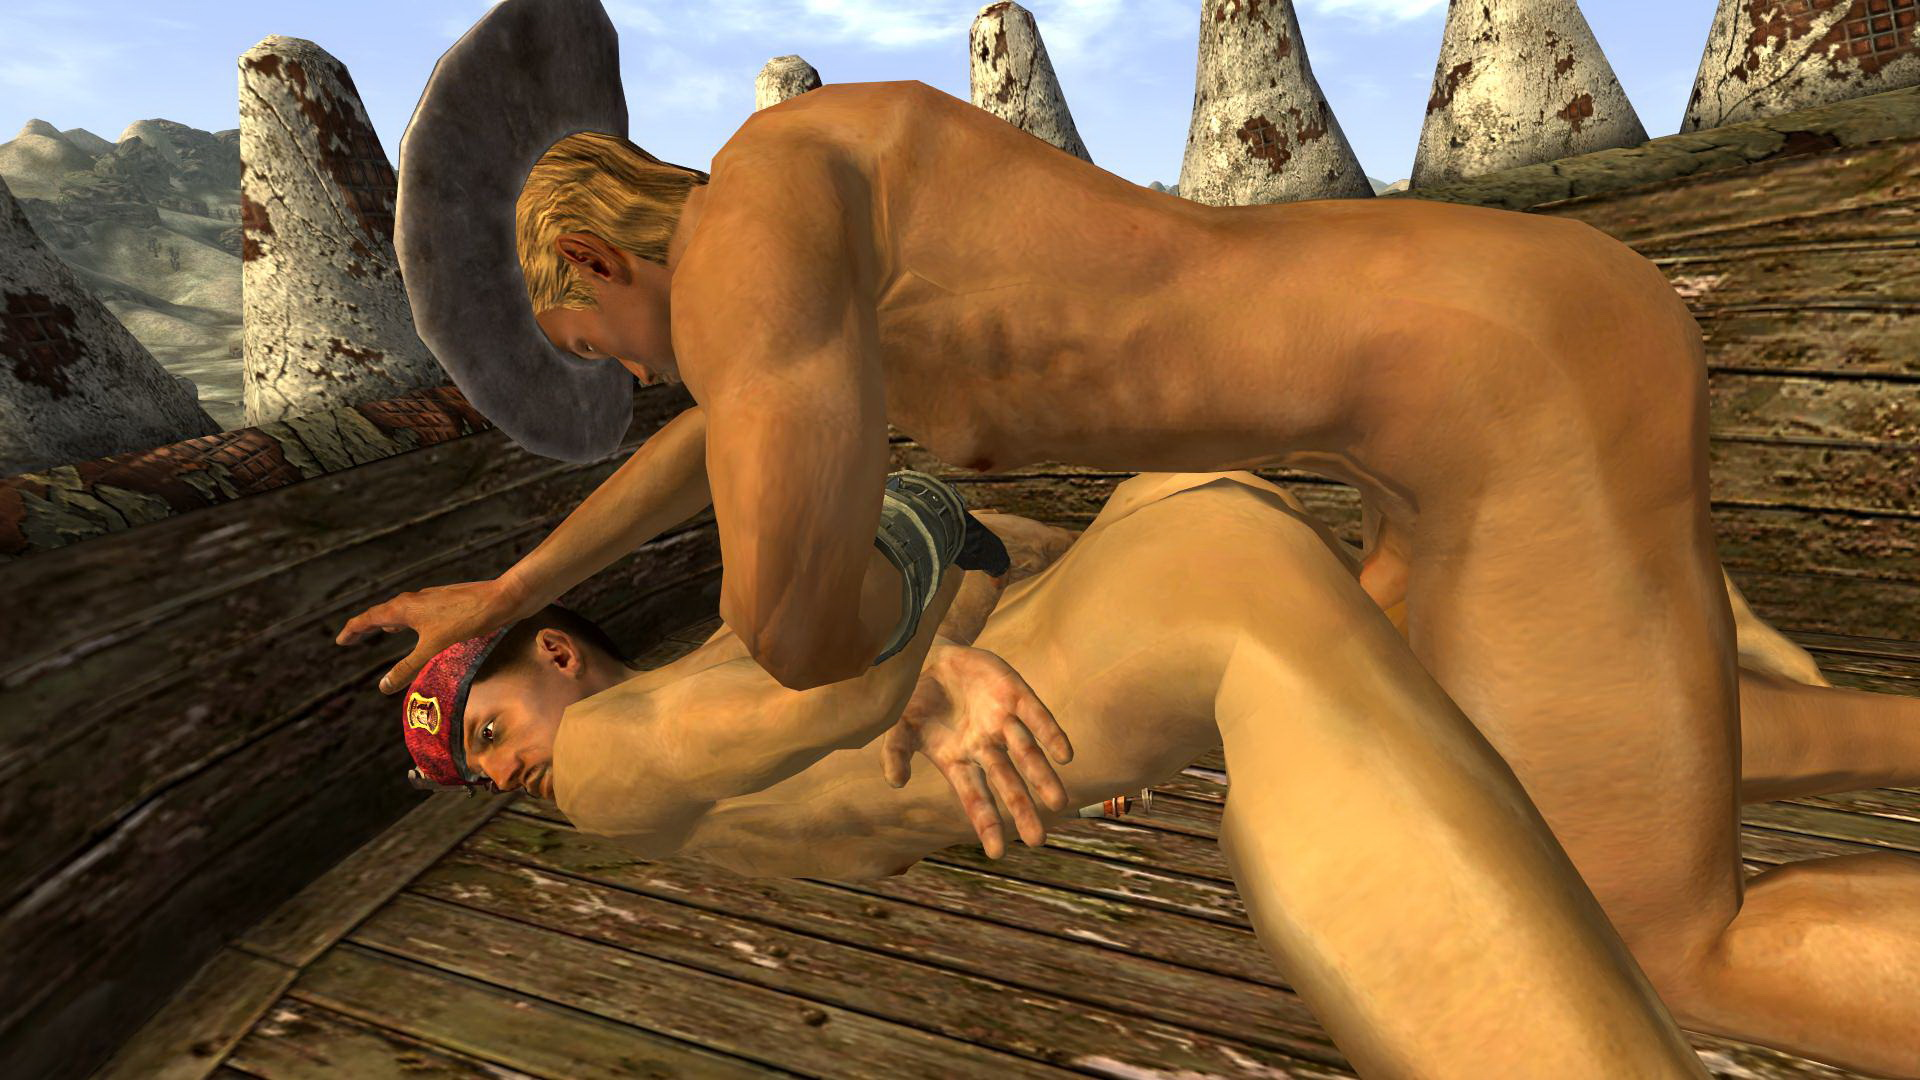 New vegas sex mods adult photos